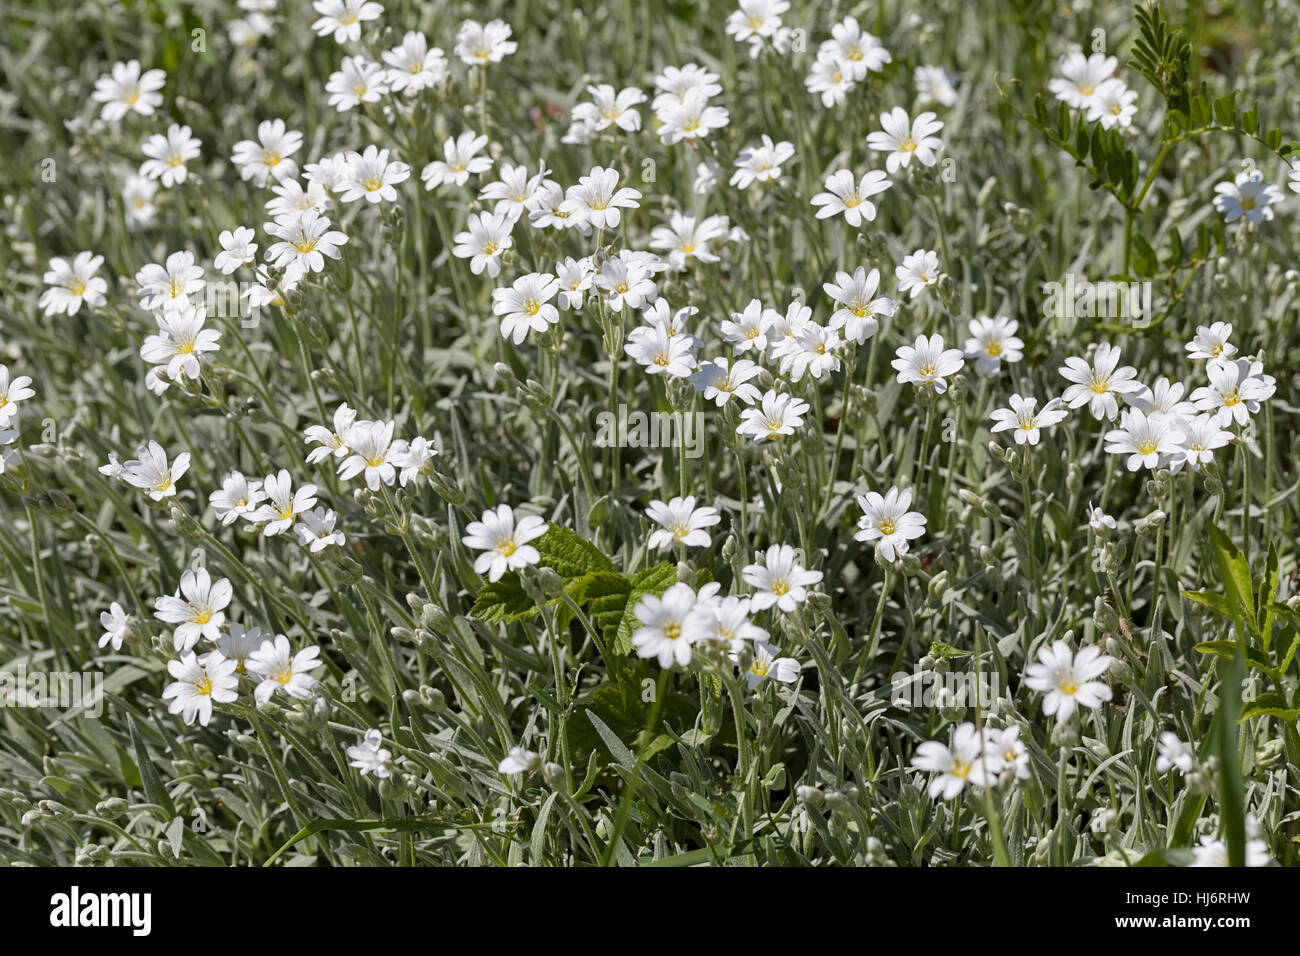 Kinds Of White Small Flowers In The Meadow Note Shallow Depth Of